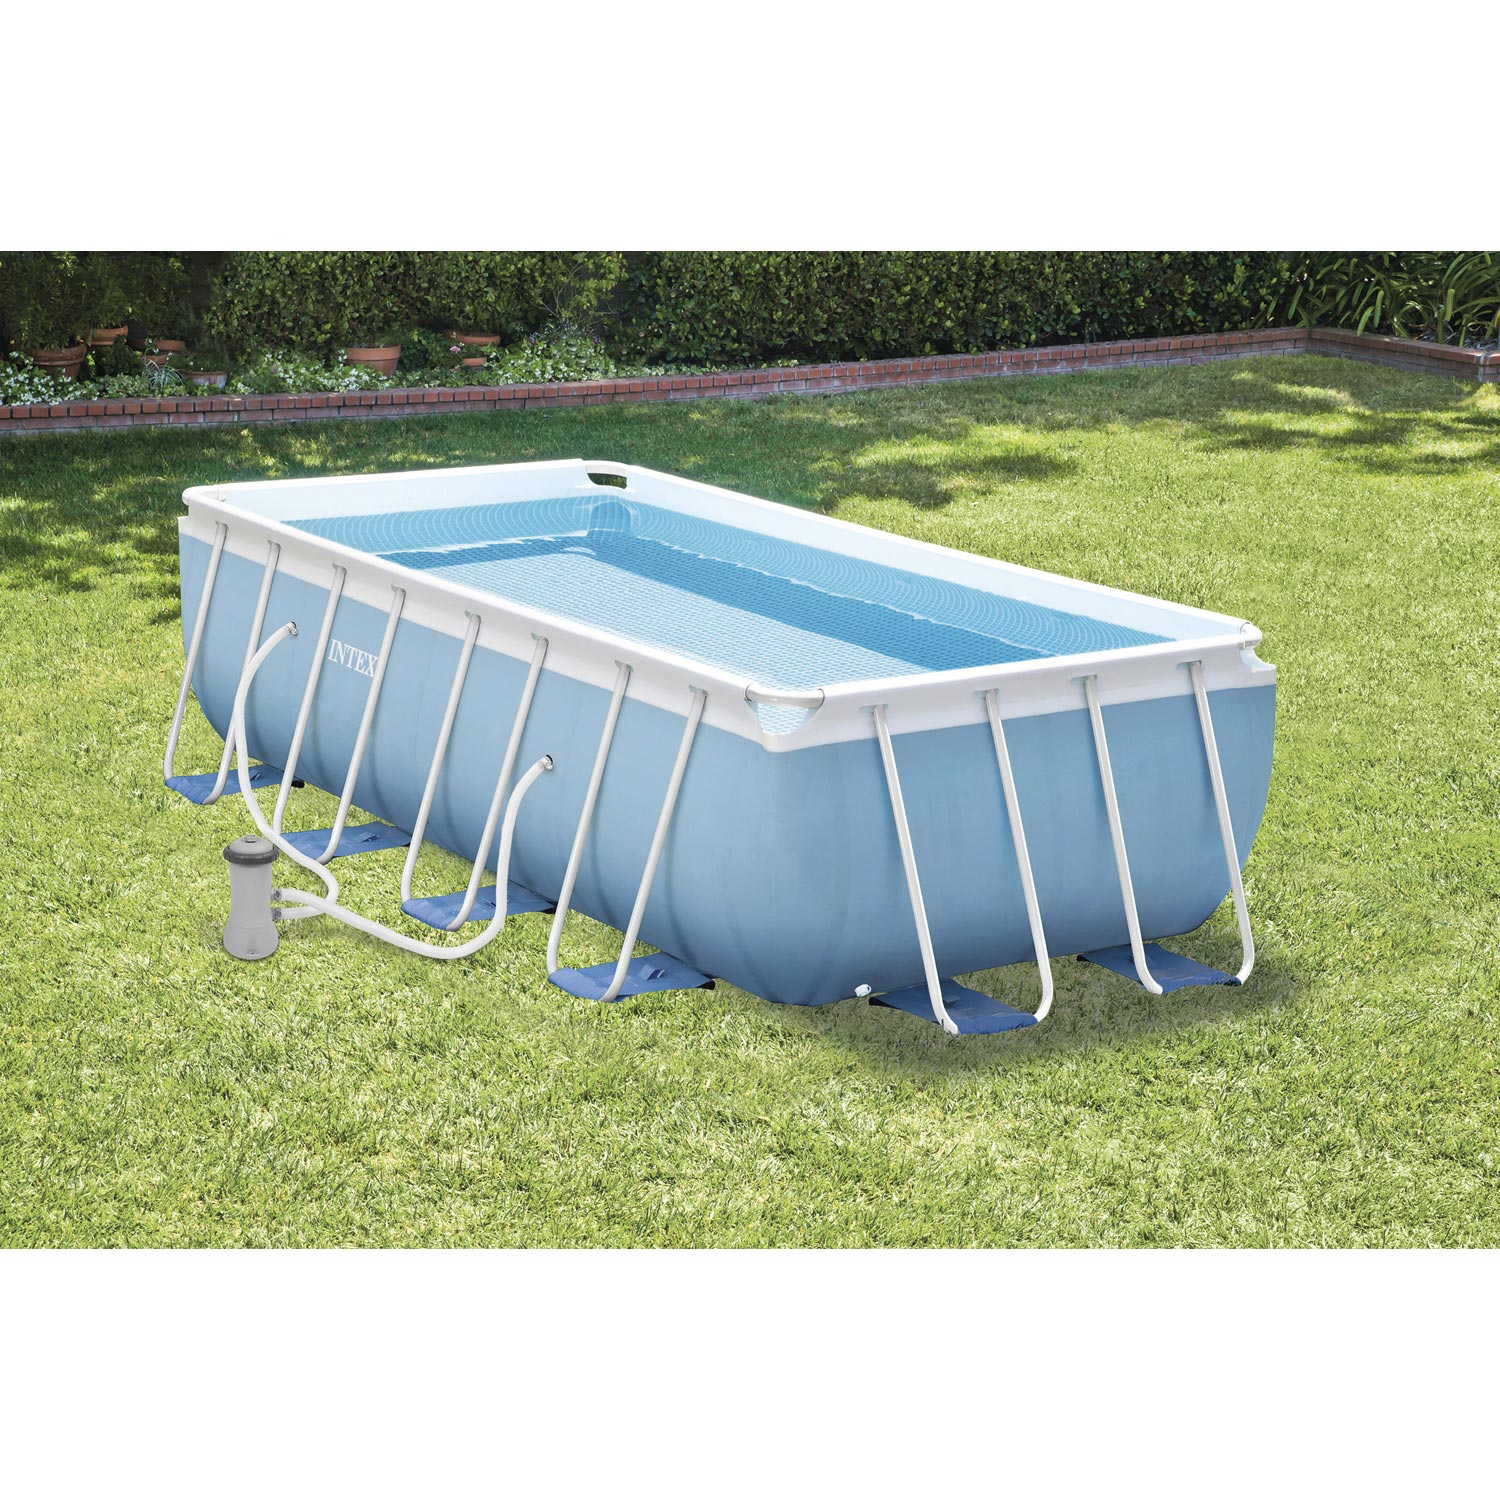 Piscine hors sol autoportante tubulaire prism frame intex for Piscine tubulaire leroy merlin